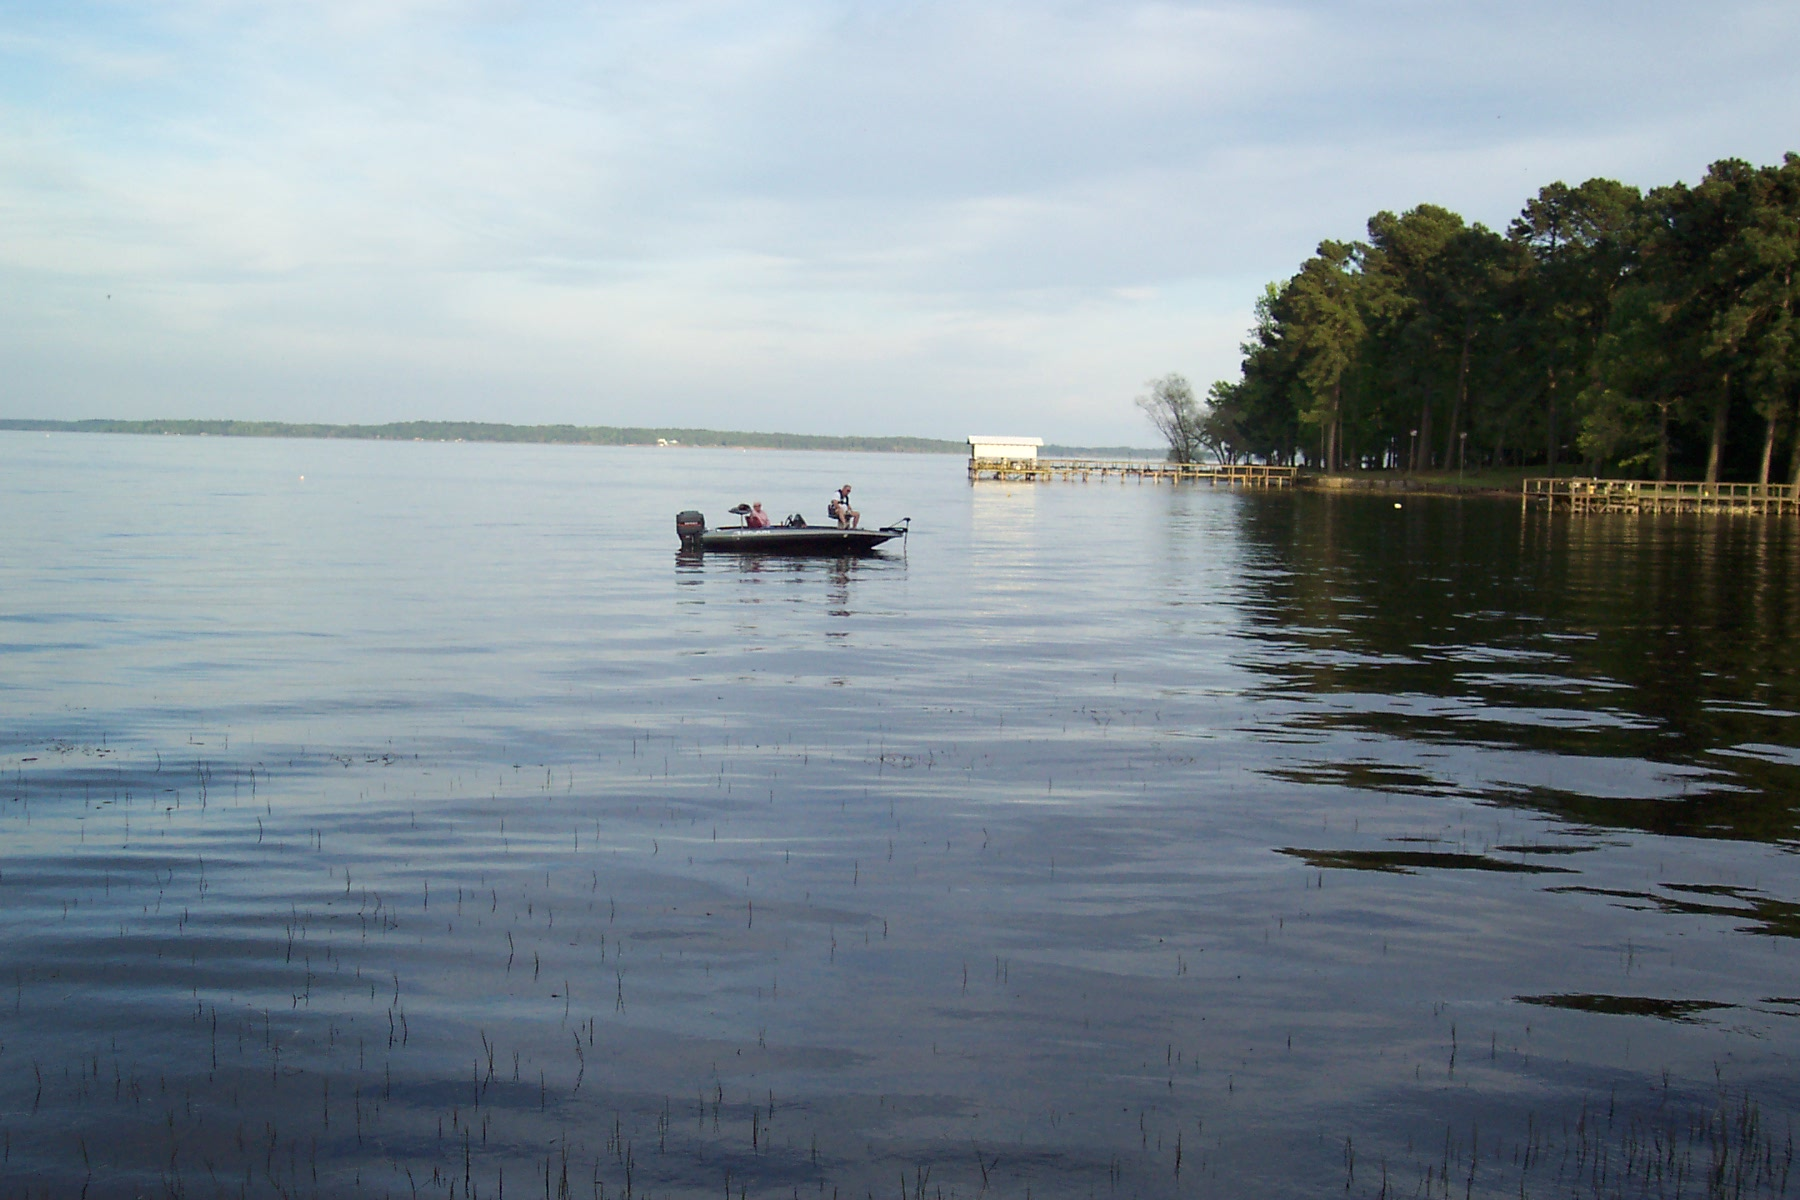 Fisherman drifting with the tide, relaxing as they cast their lines into the water